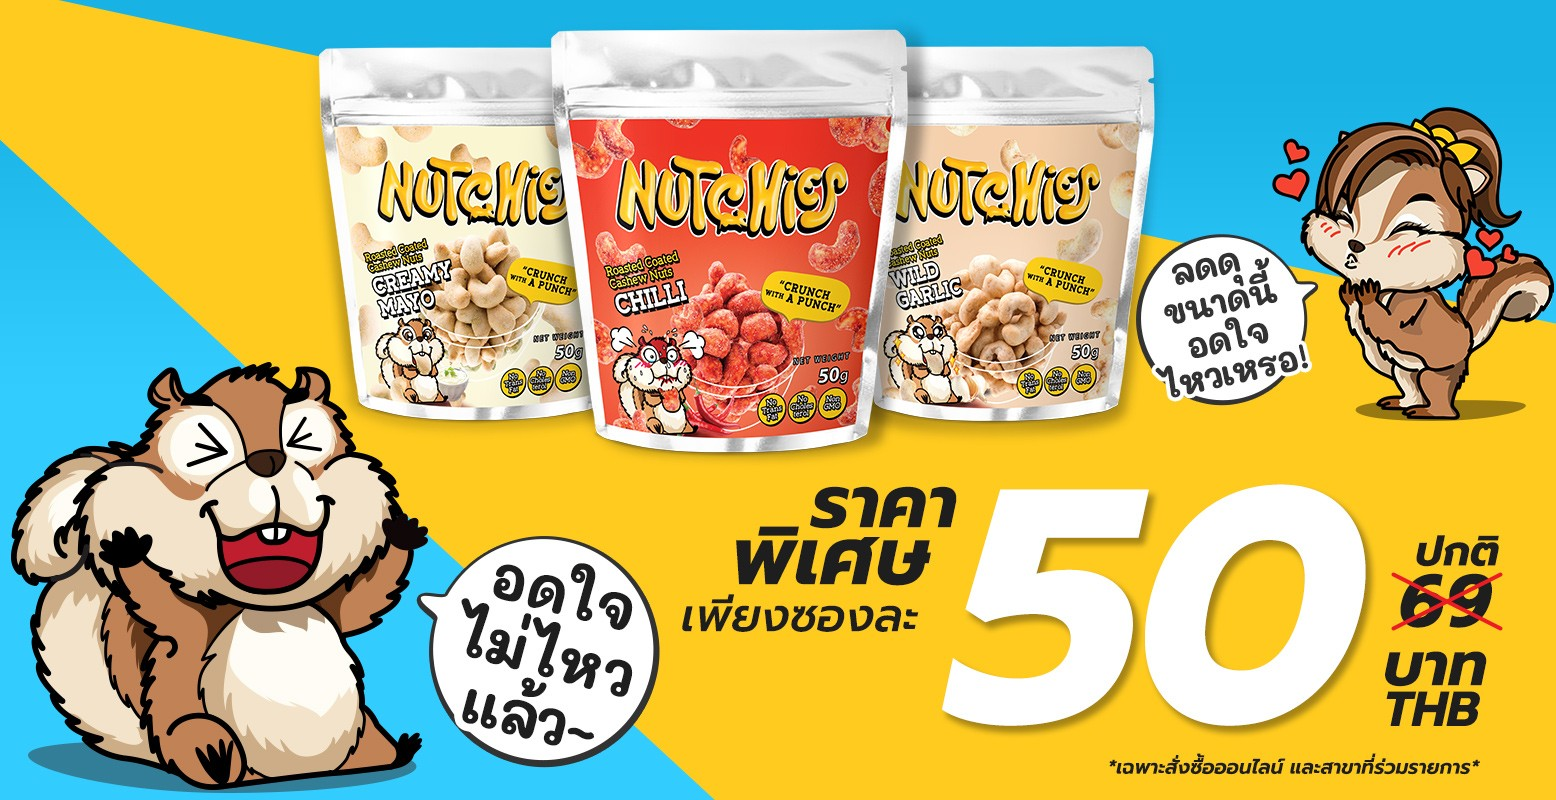 NUTCHIES Clearance Sales Promotion